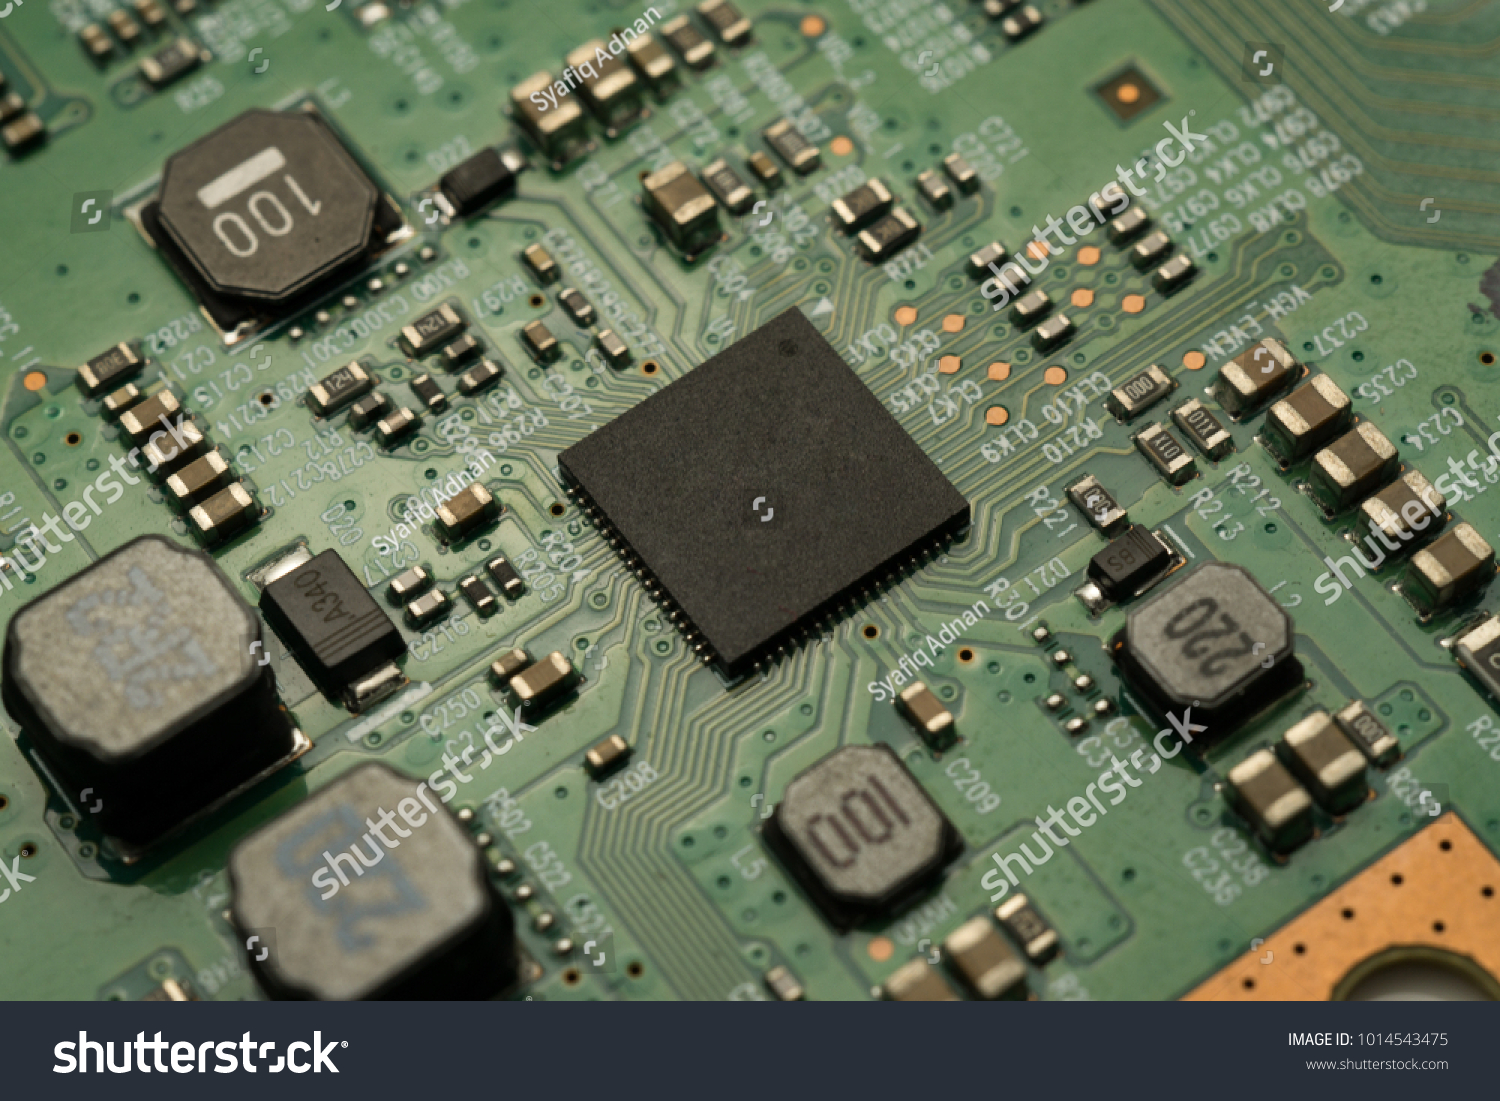 Printed Circuit Board Smd Ic Mounted Stock Photo Edit Now Image With Part On